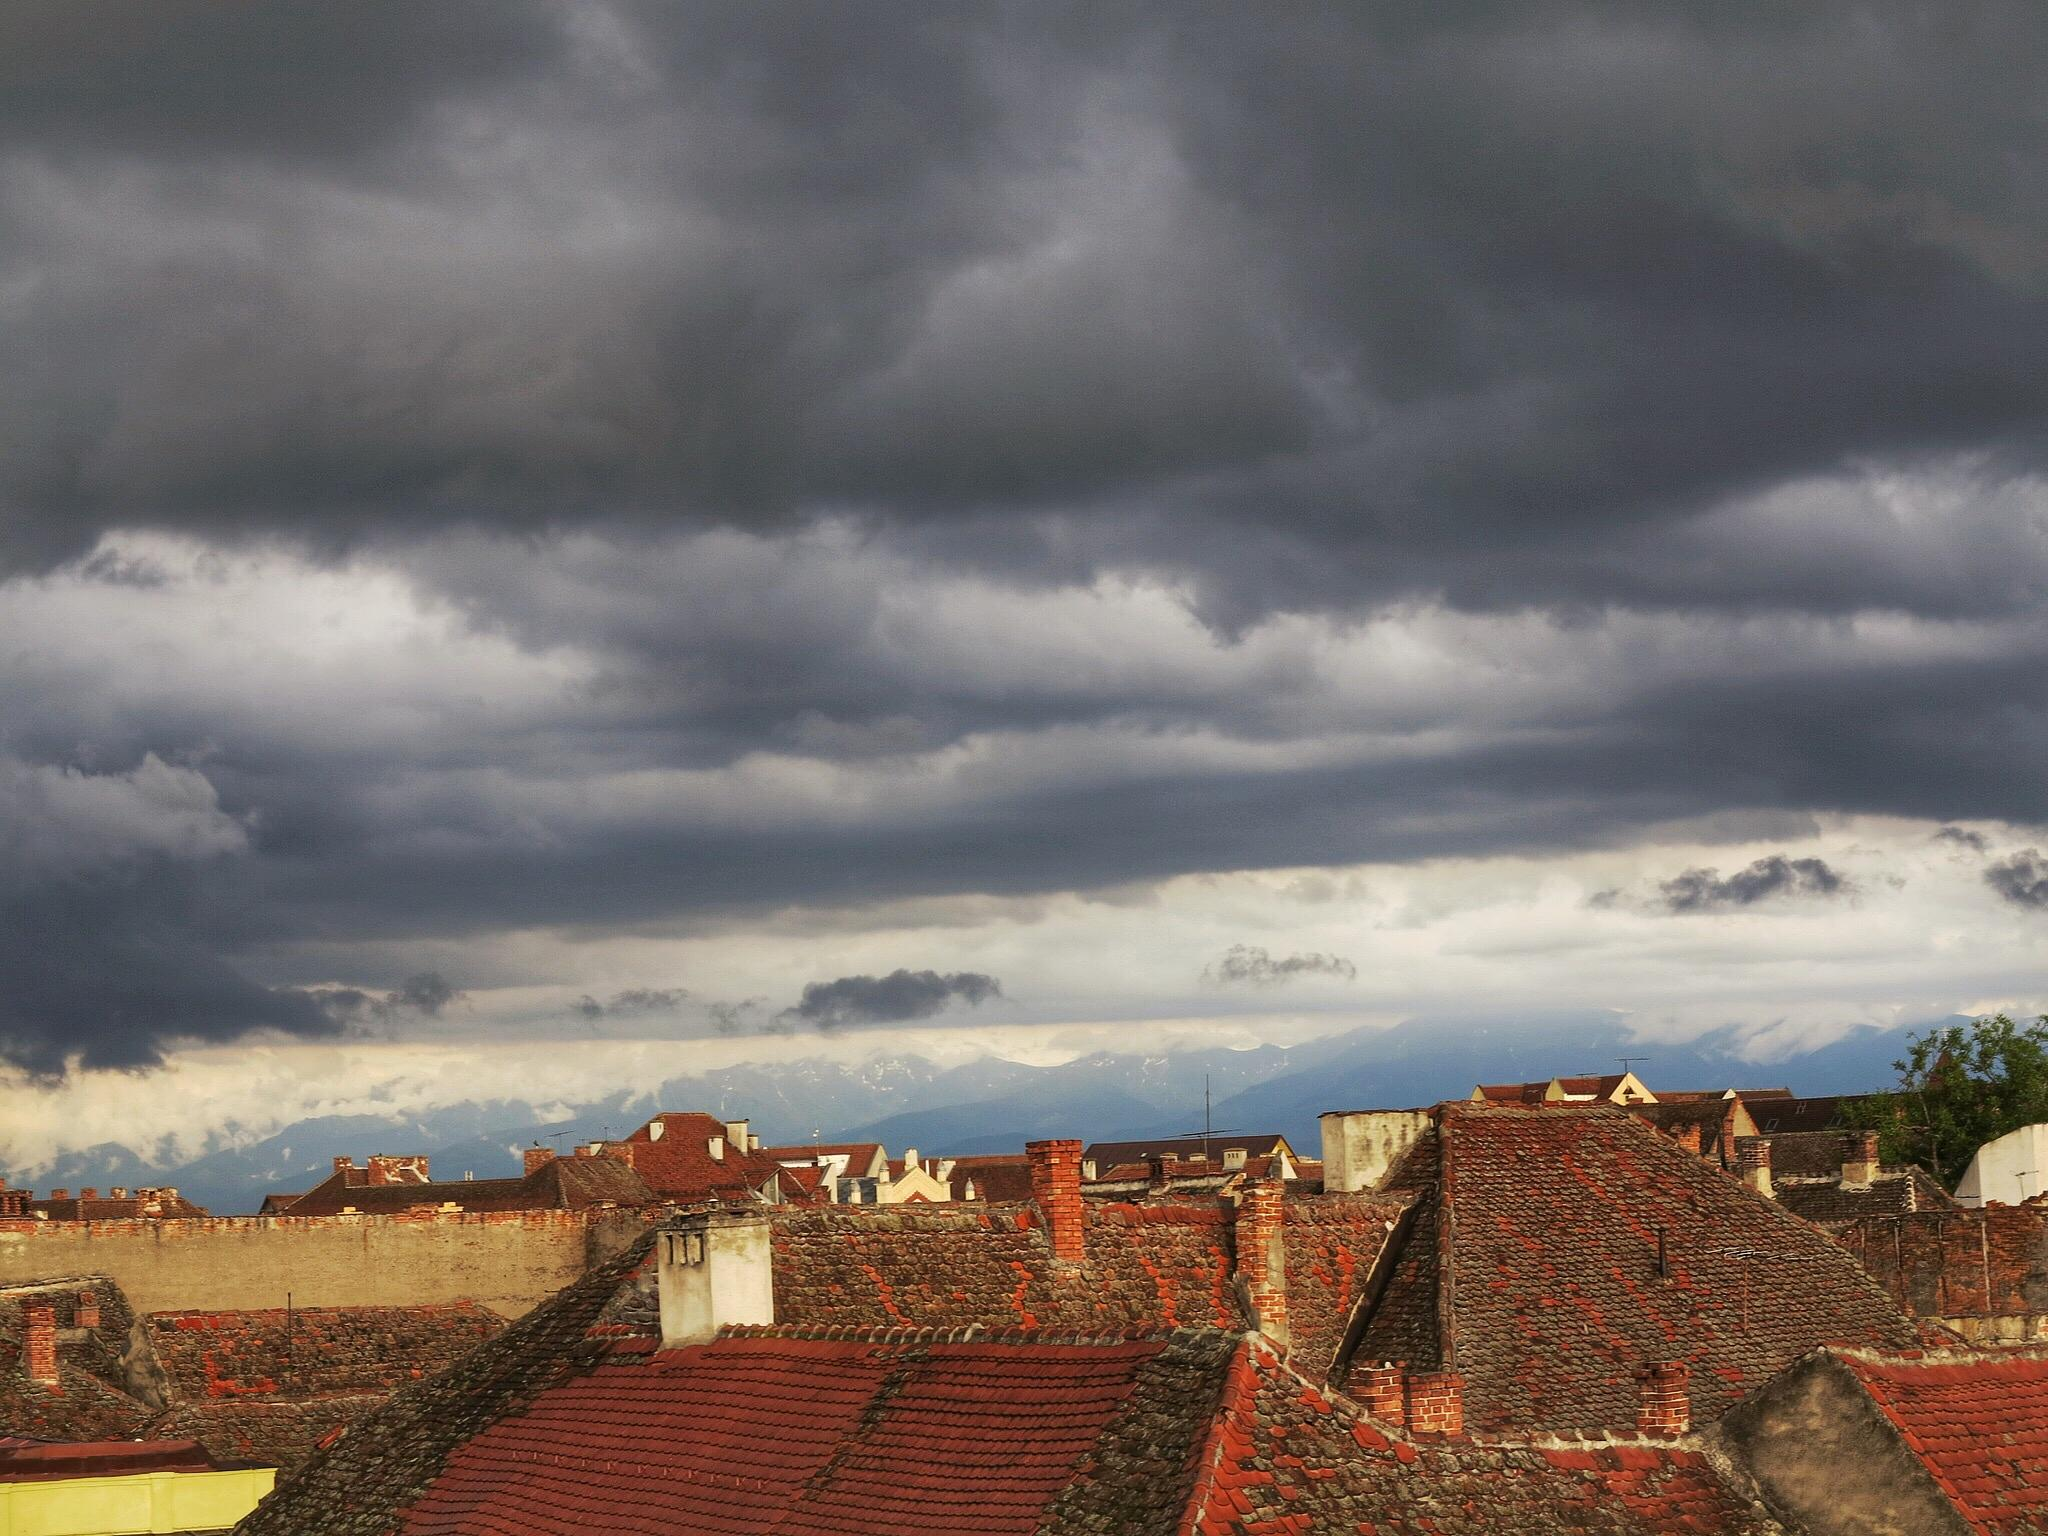 Clouds,Mountains & Red Roofs by Adi Gli